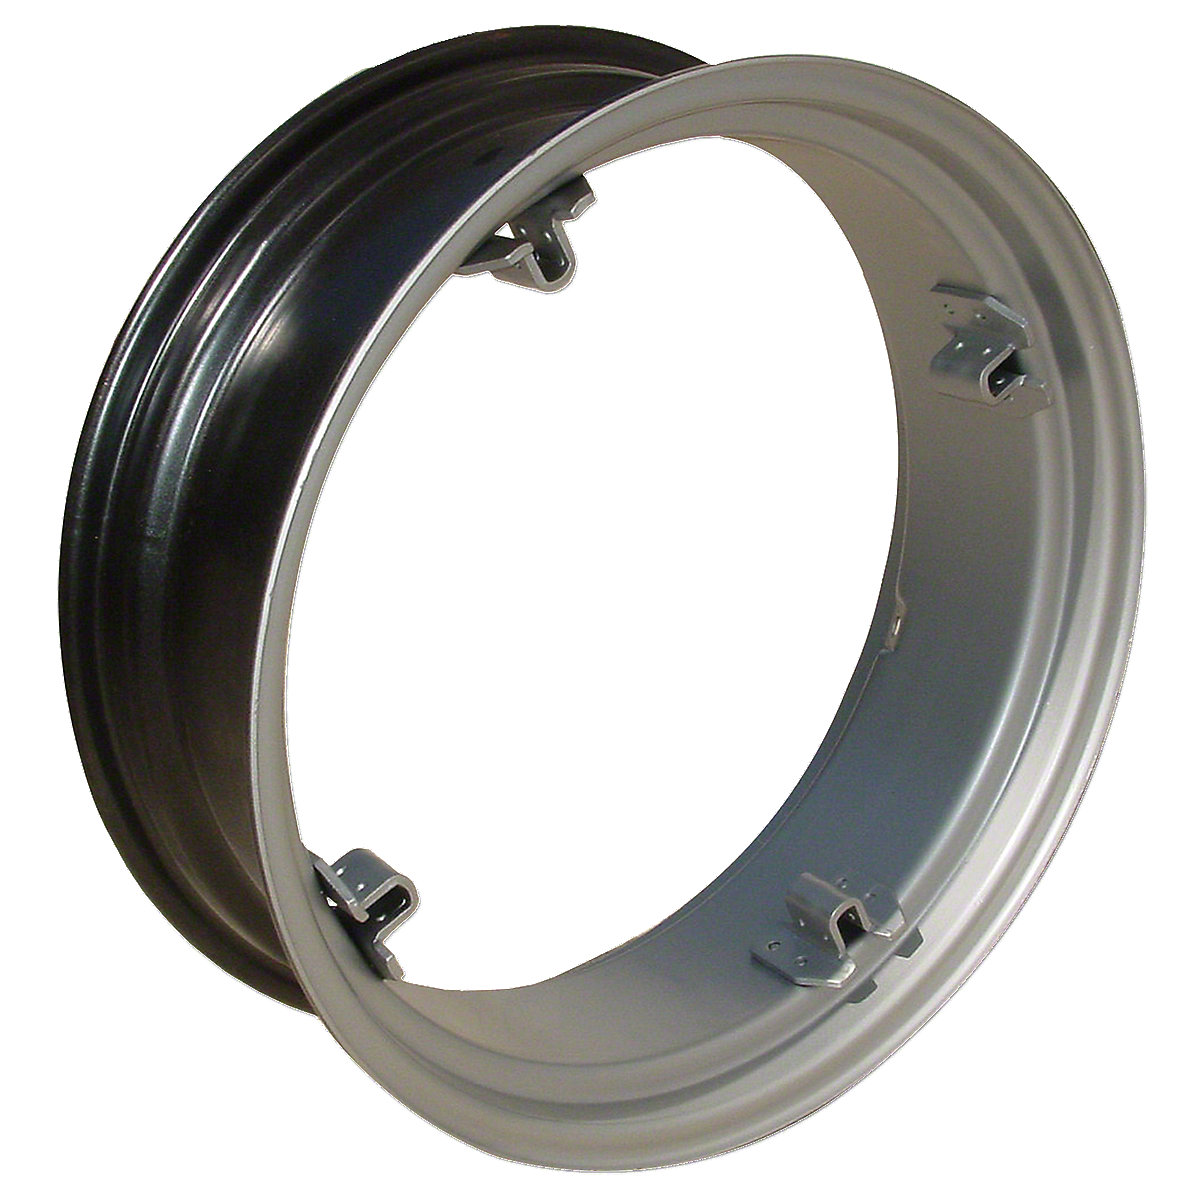 10X24 4 Loop Rear Rim For Oliver Super 44. 4 Loop Mounting Holes 14 Center to Center.  Please check and measure your tractor closely because if this rim does not fit, we do not pay return shipping on rims.